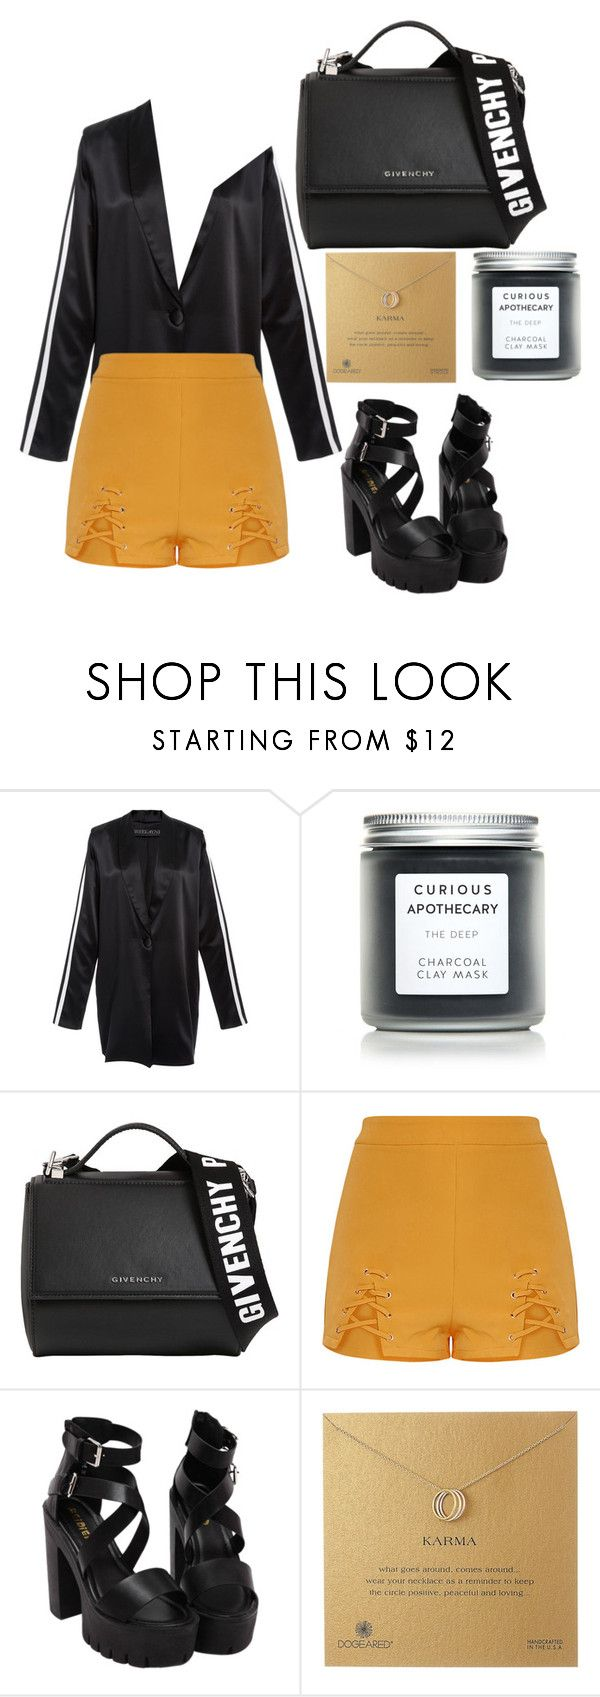 """Untitled #303"" by leilabas ❤ liked on Polyvore featuring SkinCare, Givenchy and Dogeared"